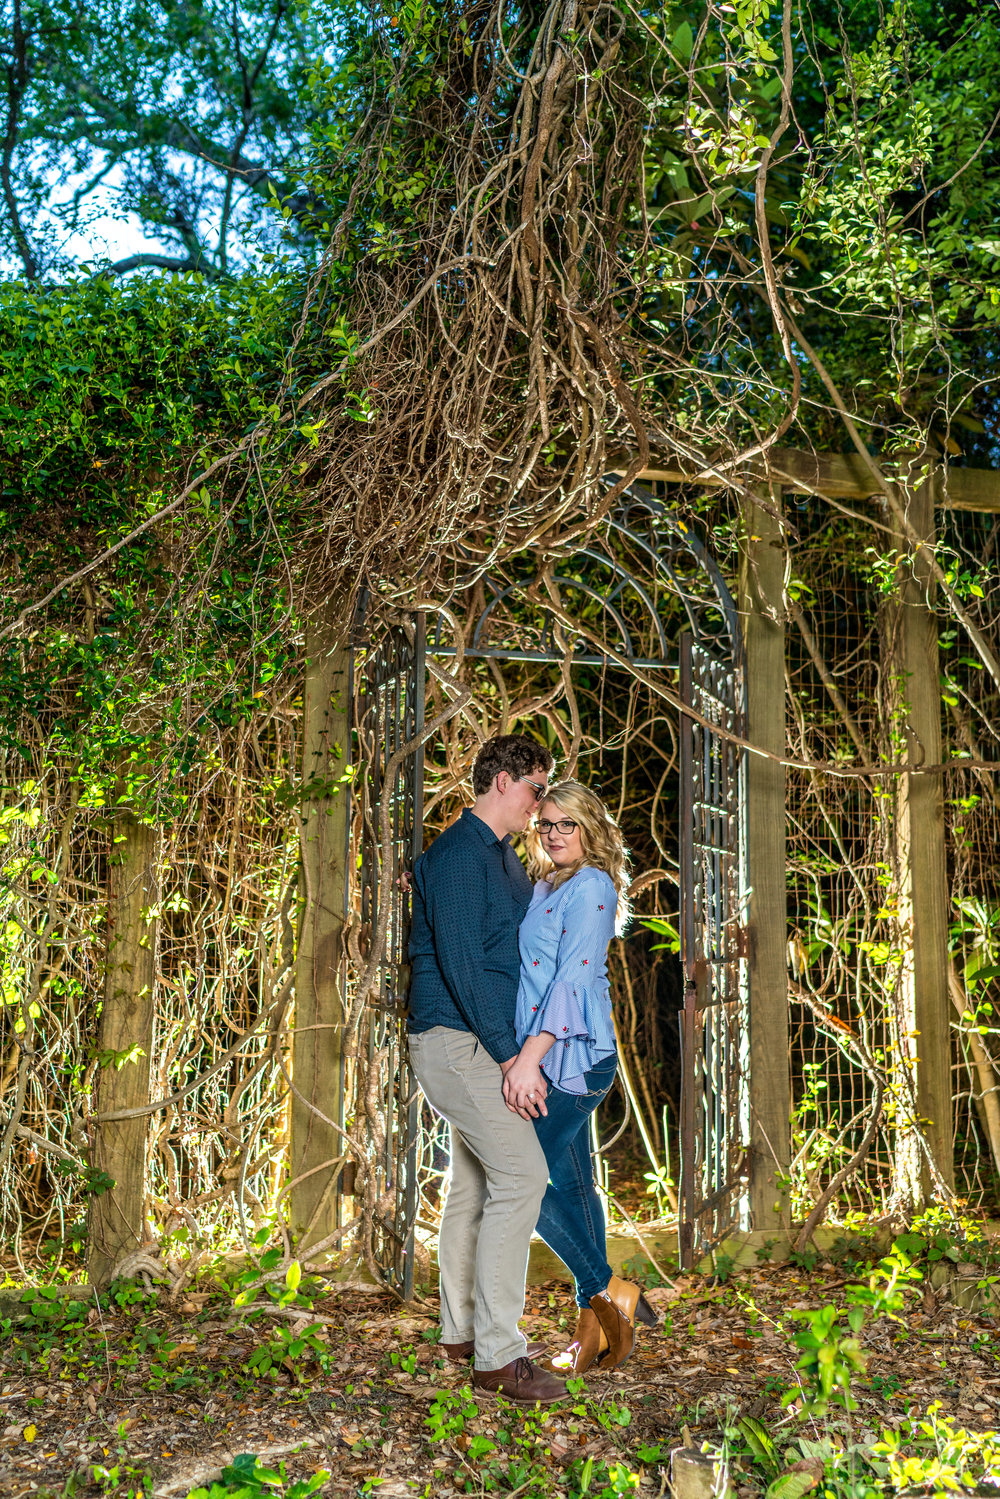 Engagement Photography - Prepping for your session